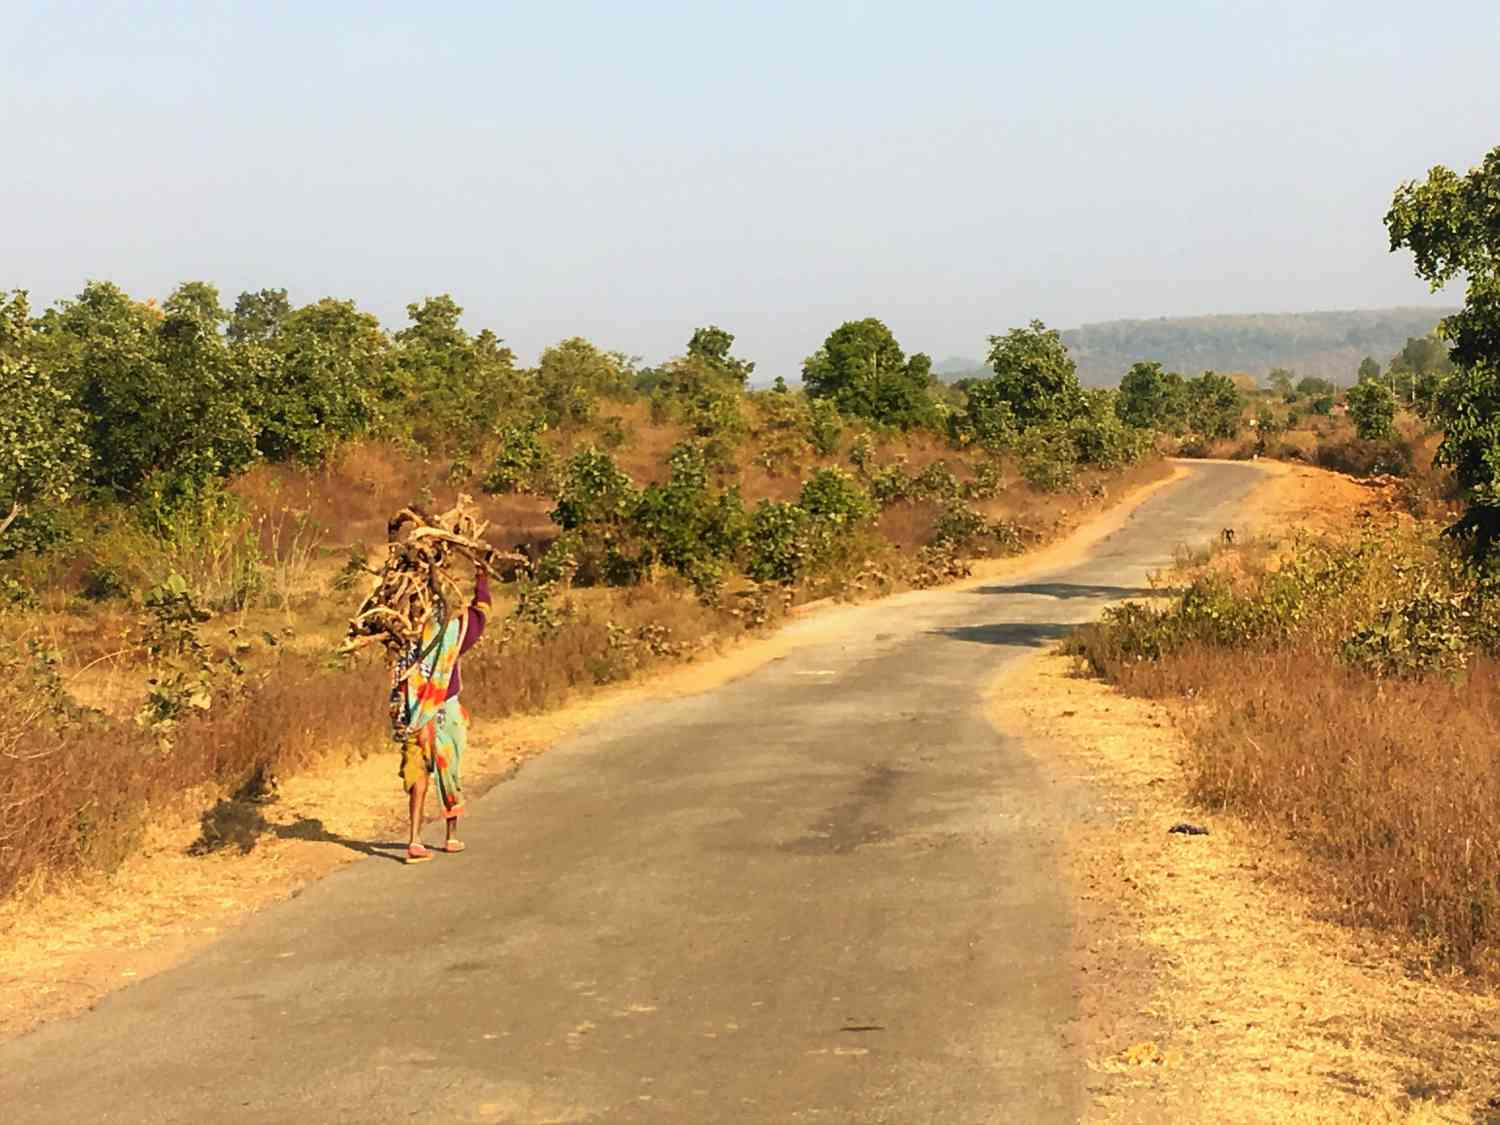 A villager carries firewood near Patni village in Chitrakoot.